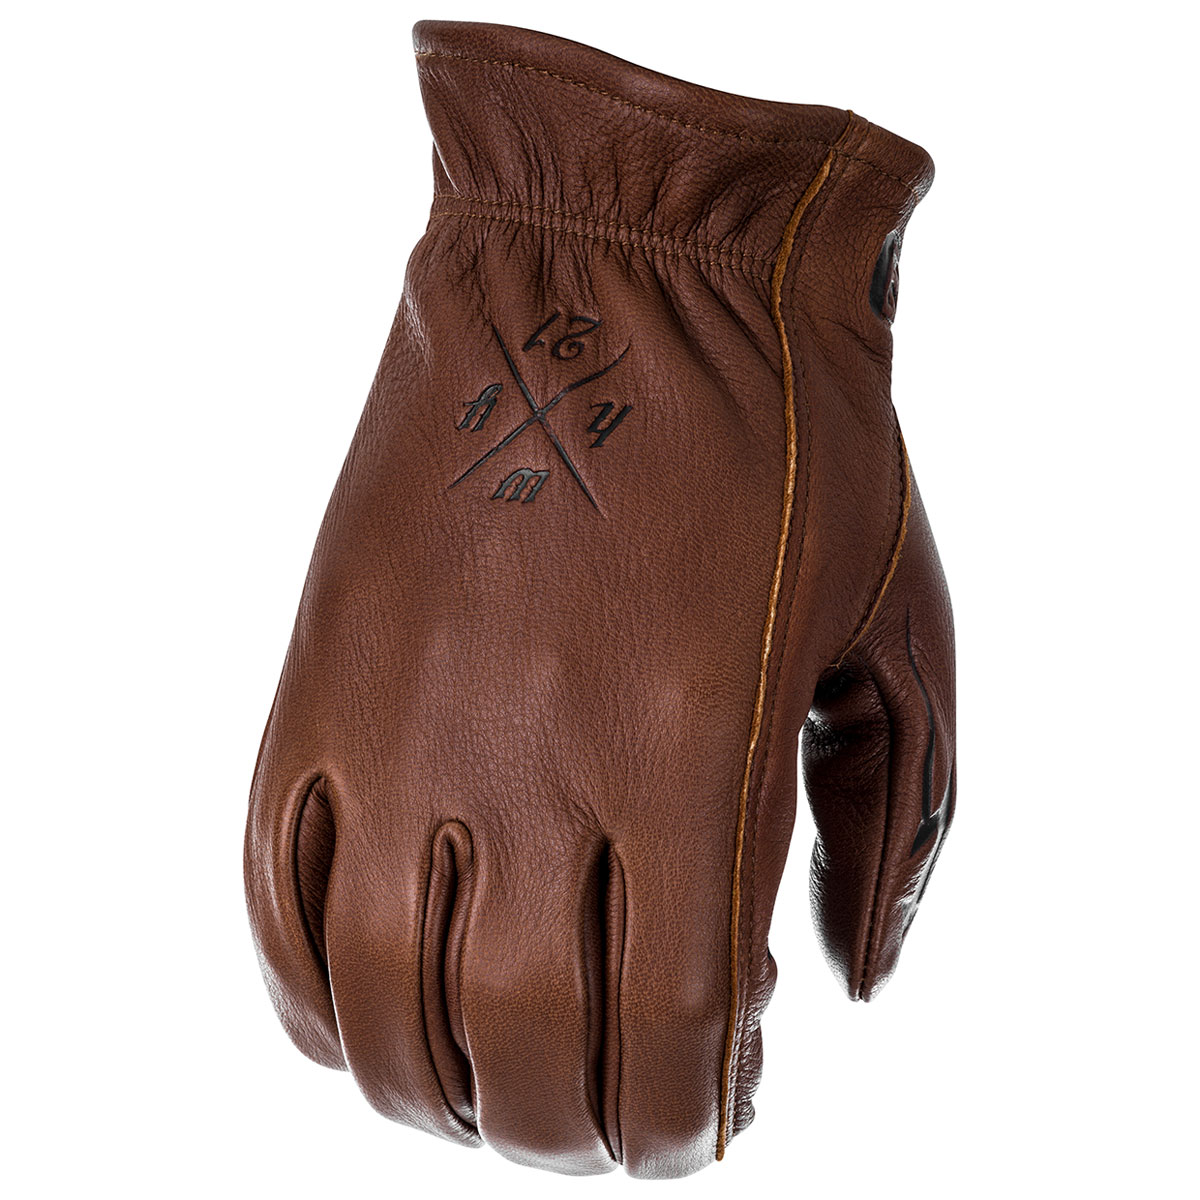 Highway 21 Men's Louie Brown Gloves